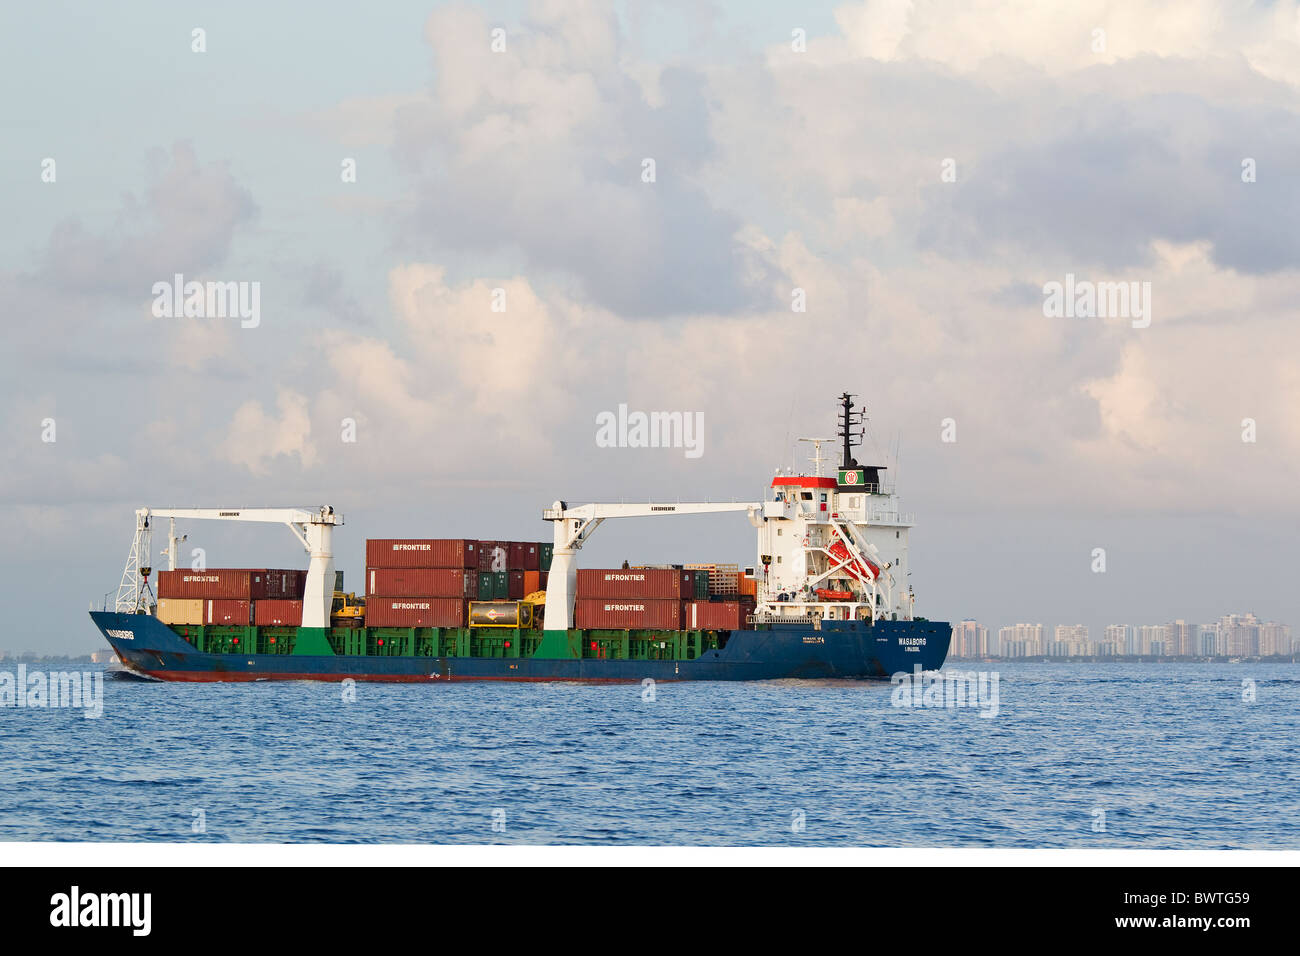 Cargo ship at sea near city, Daytona, Florida, with shipping containers - Stock Image